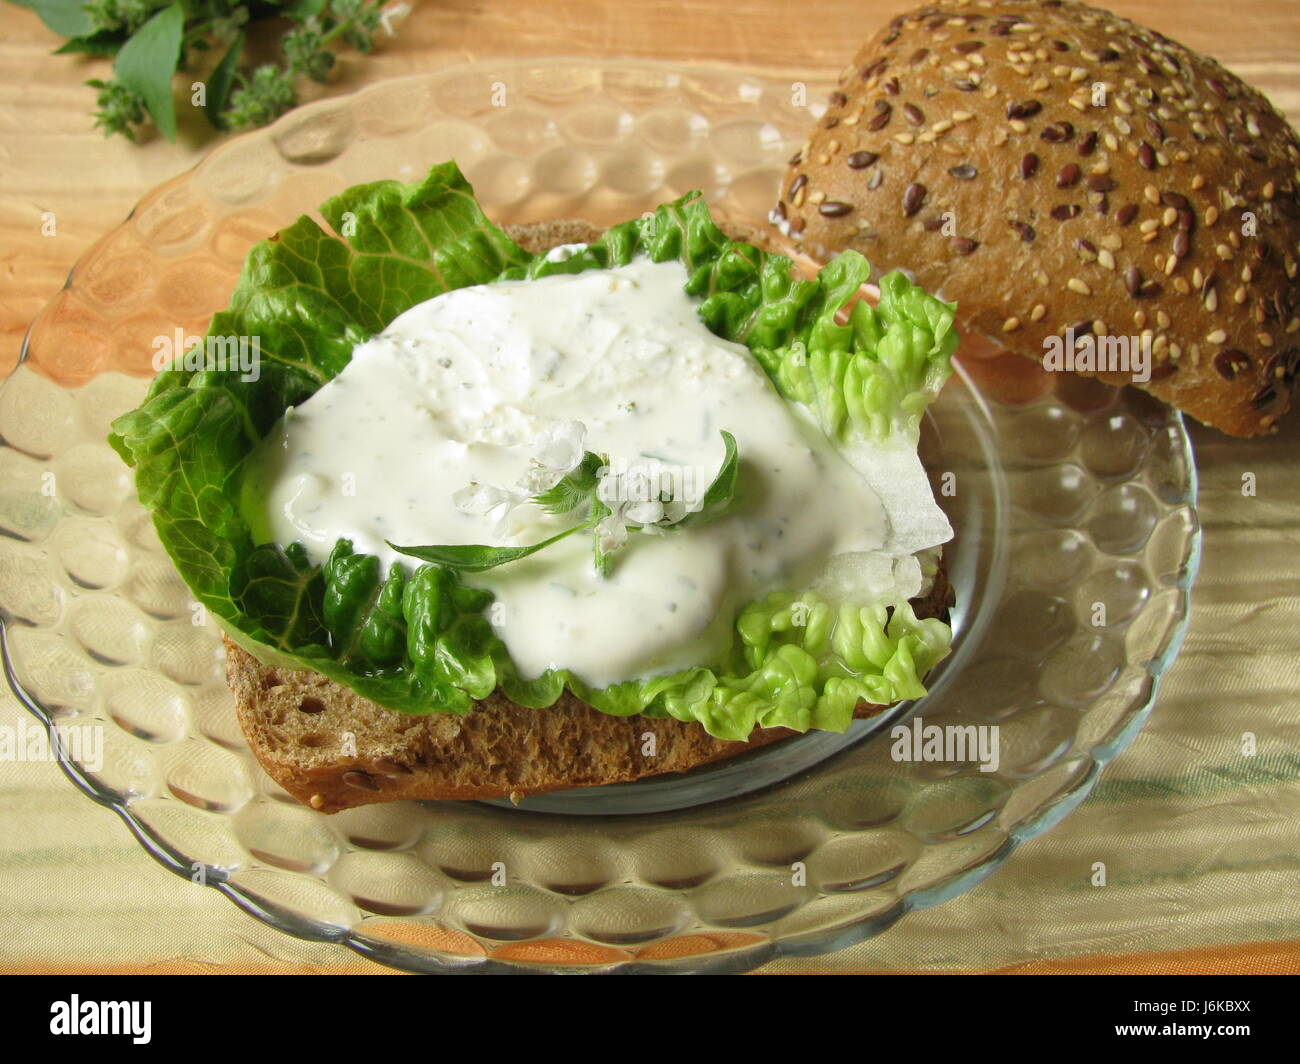 bread roll kaiser herbs sandwich deficient in calories curd curds healthfully Stock Photo